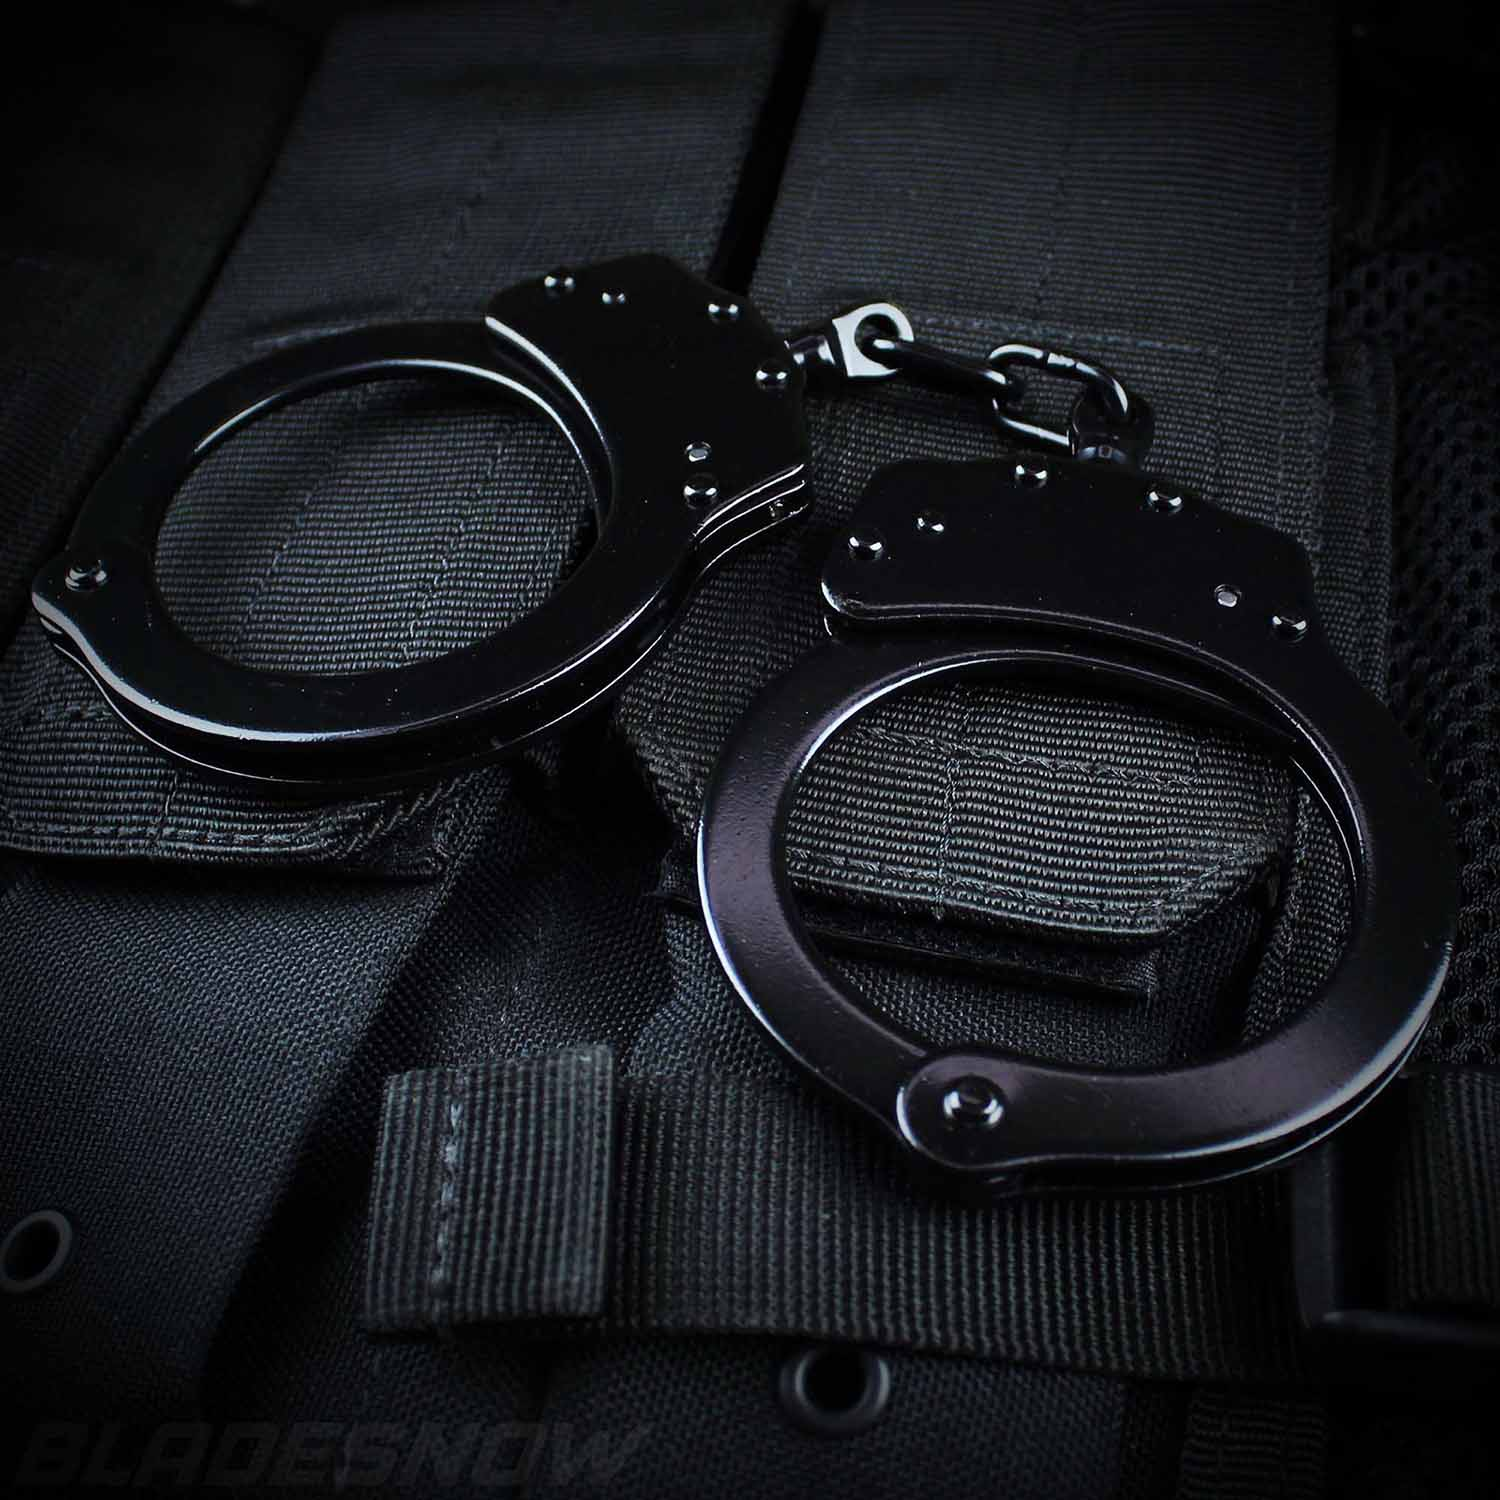 Professional Grade Handcuffs Black Double Locking